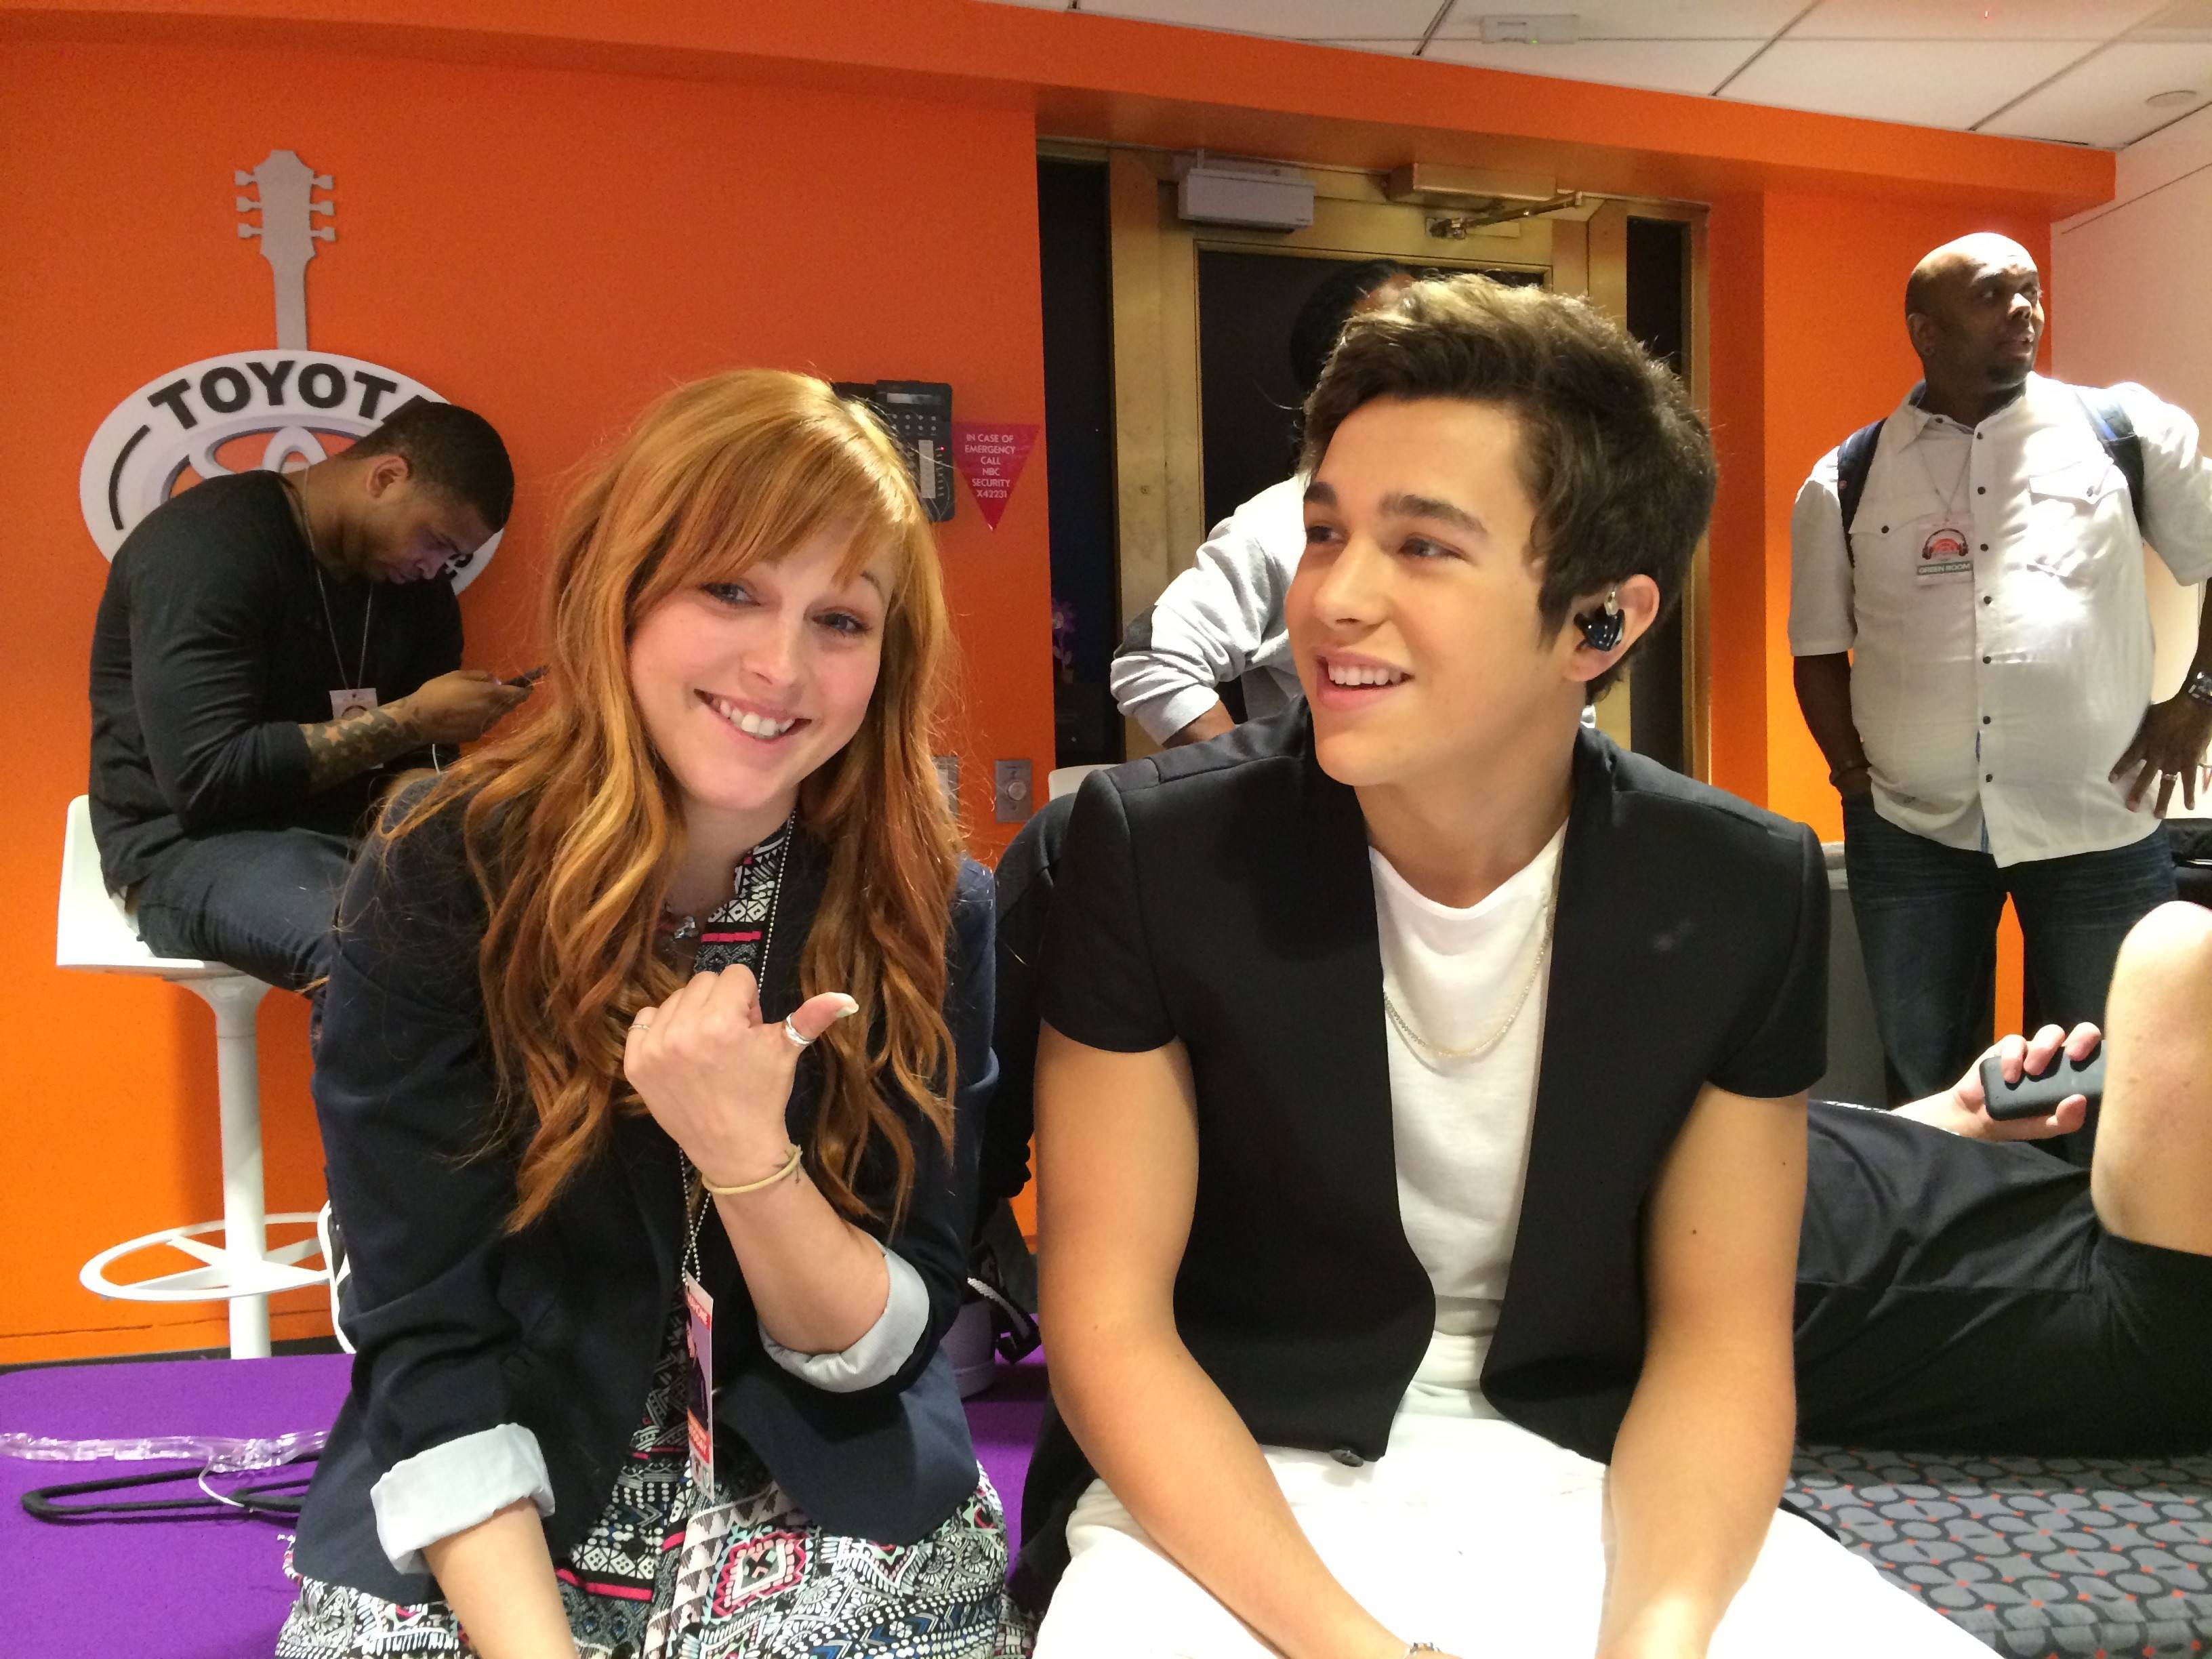 Choreographer and dancer Aubree Storm, of Elburn, works with pop star Austin Mahone, above, and Justin Bieber, top left.